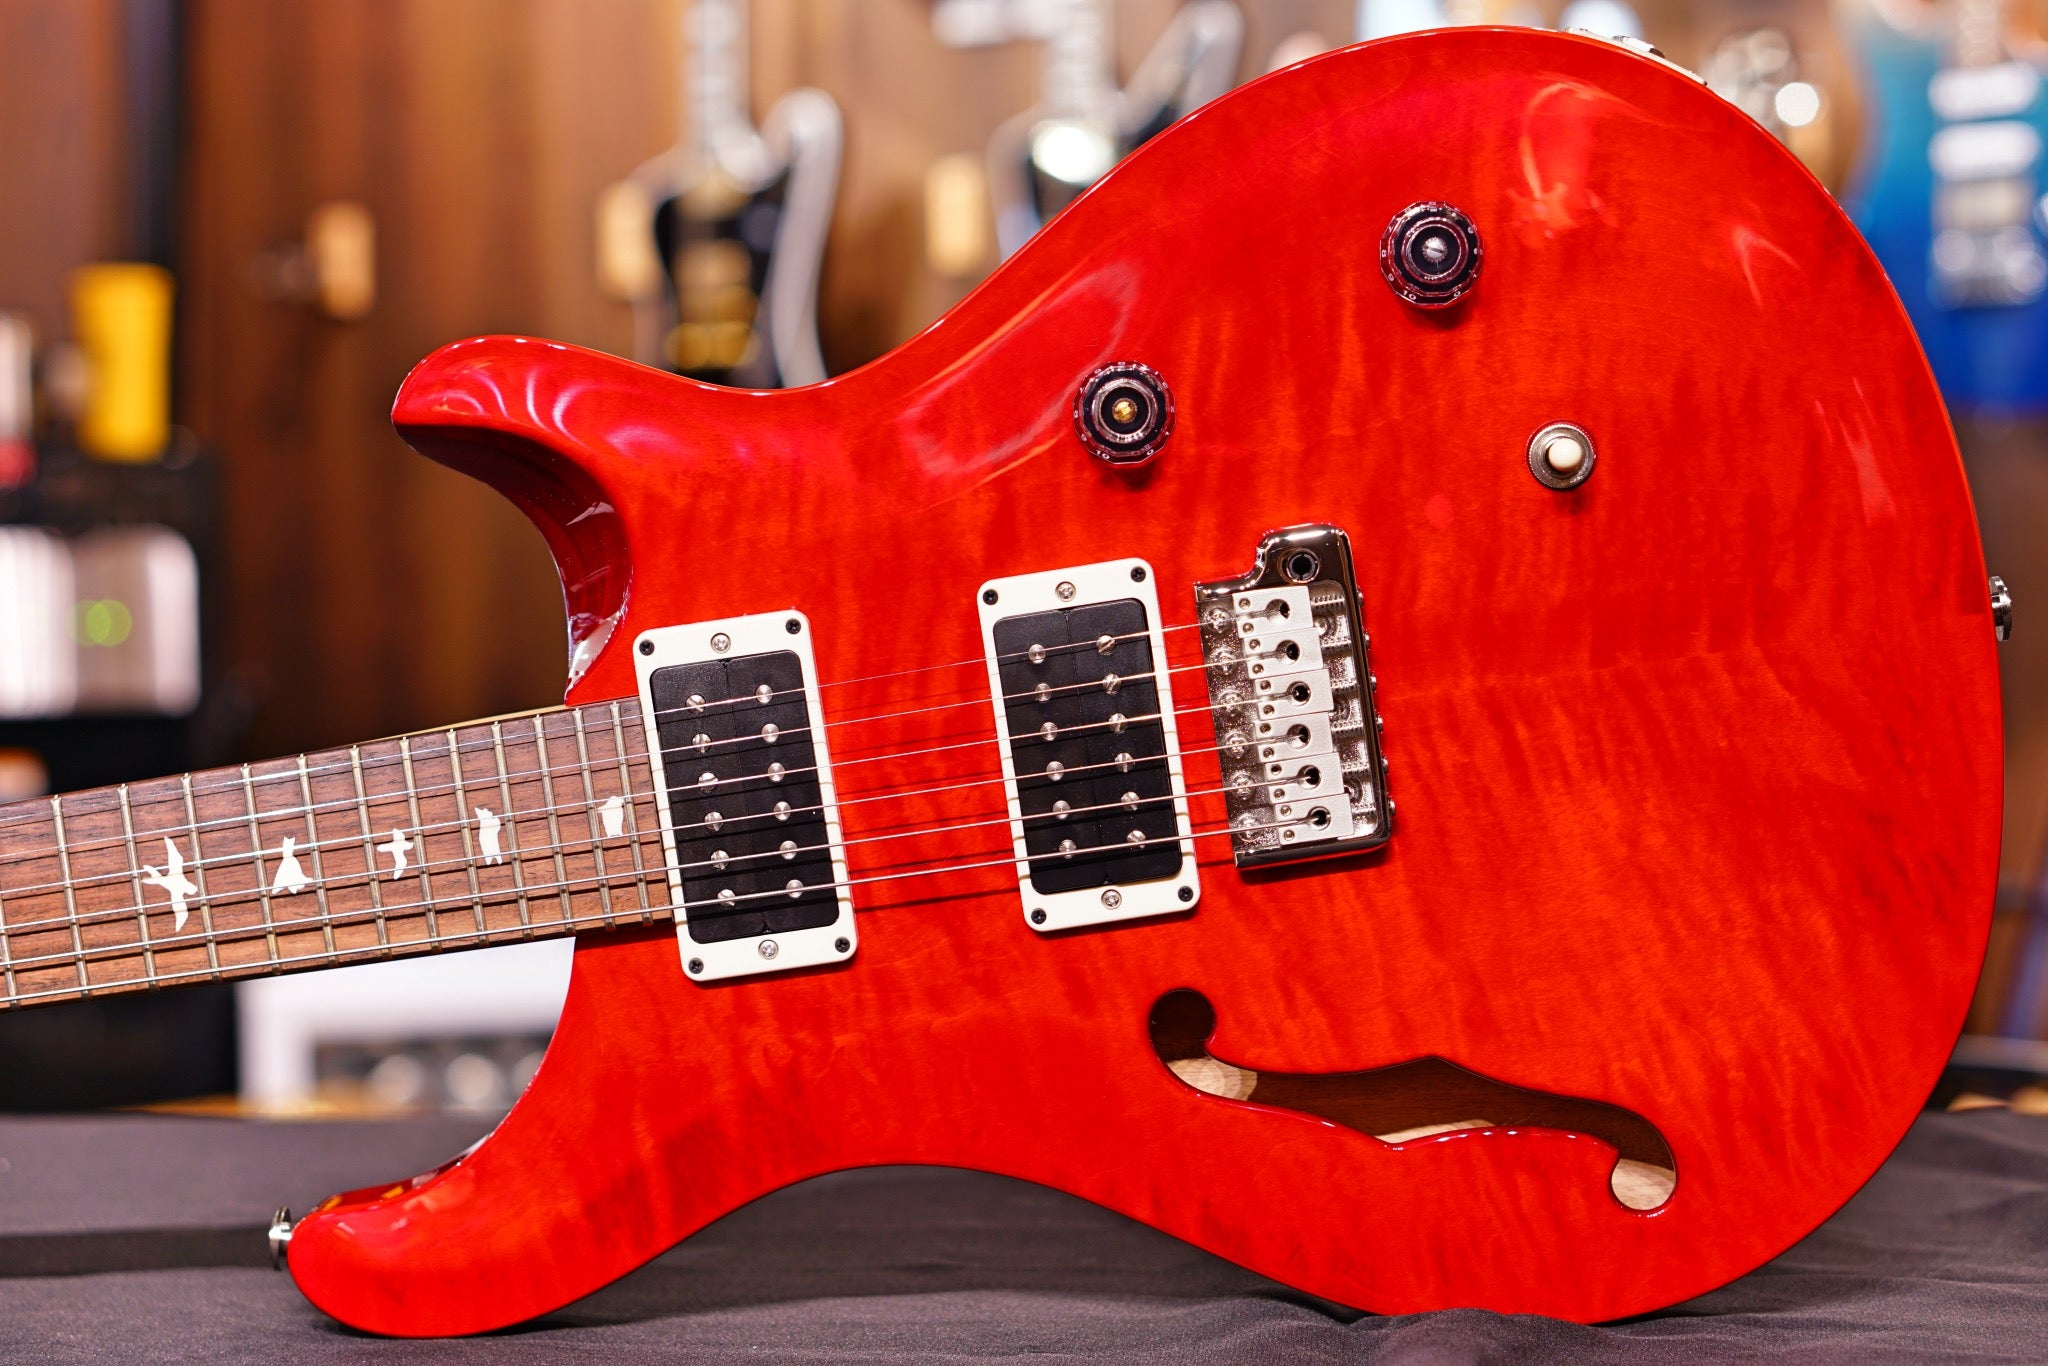 PRS CE24 Semi hollow scarlet red 0290687 PRS - HIENDGUITAR.COM